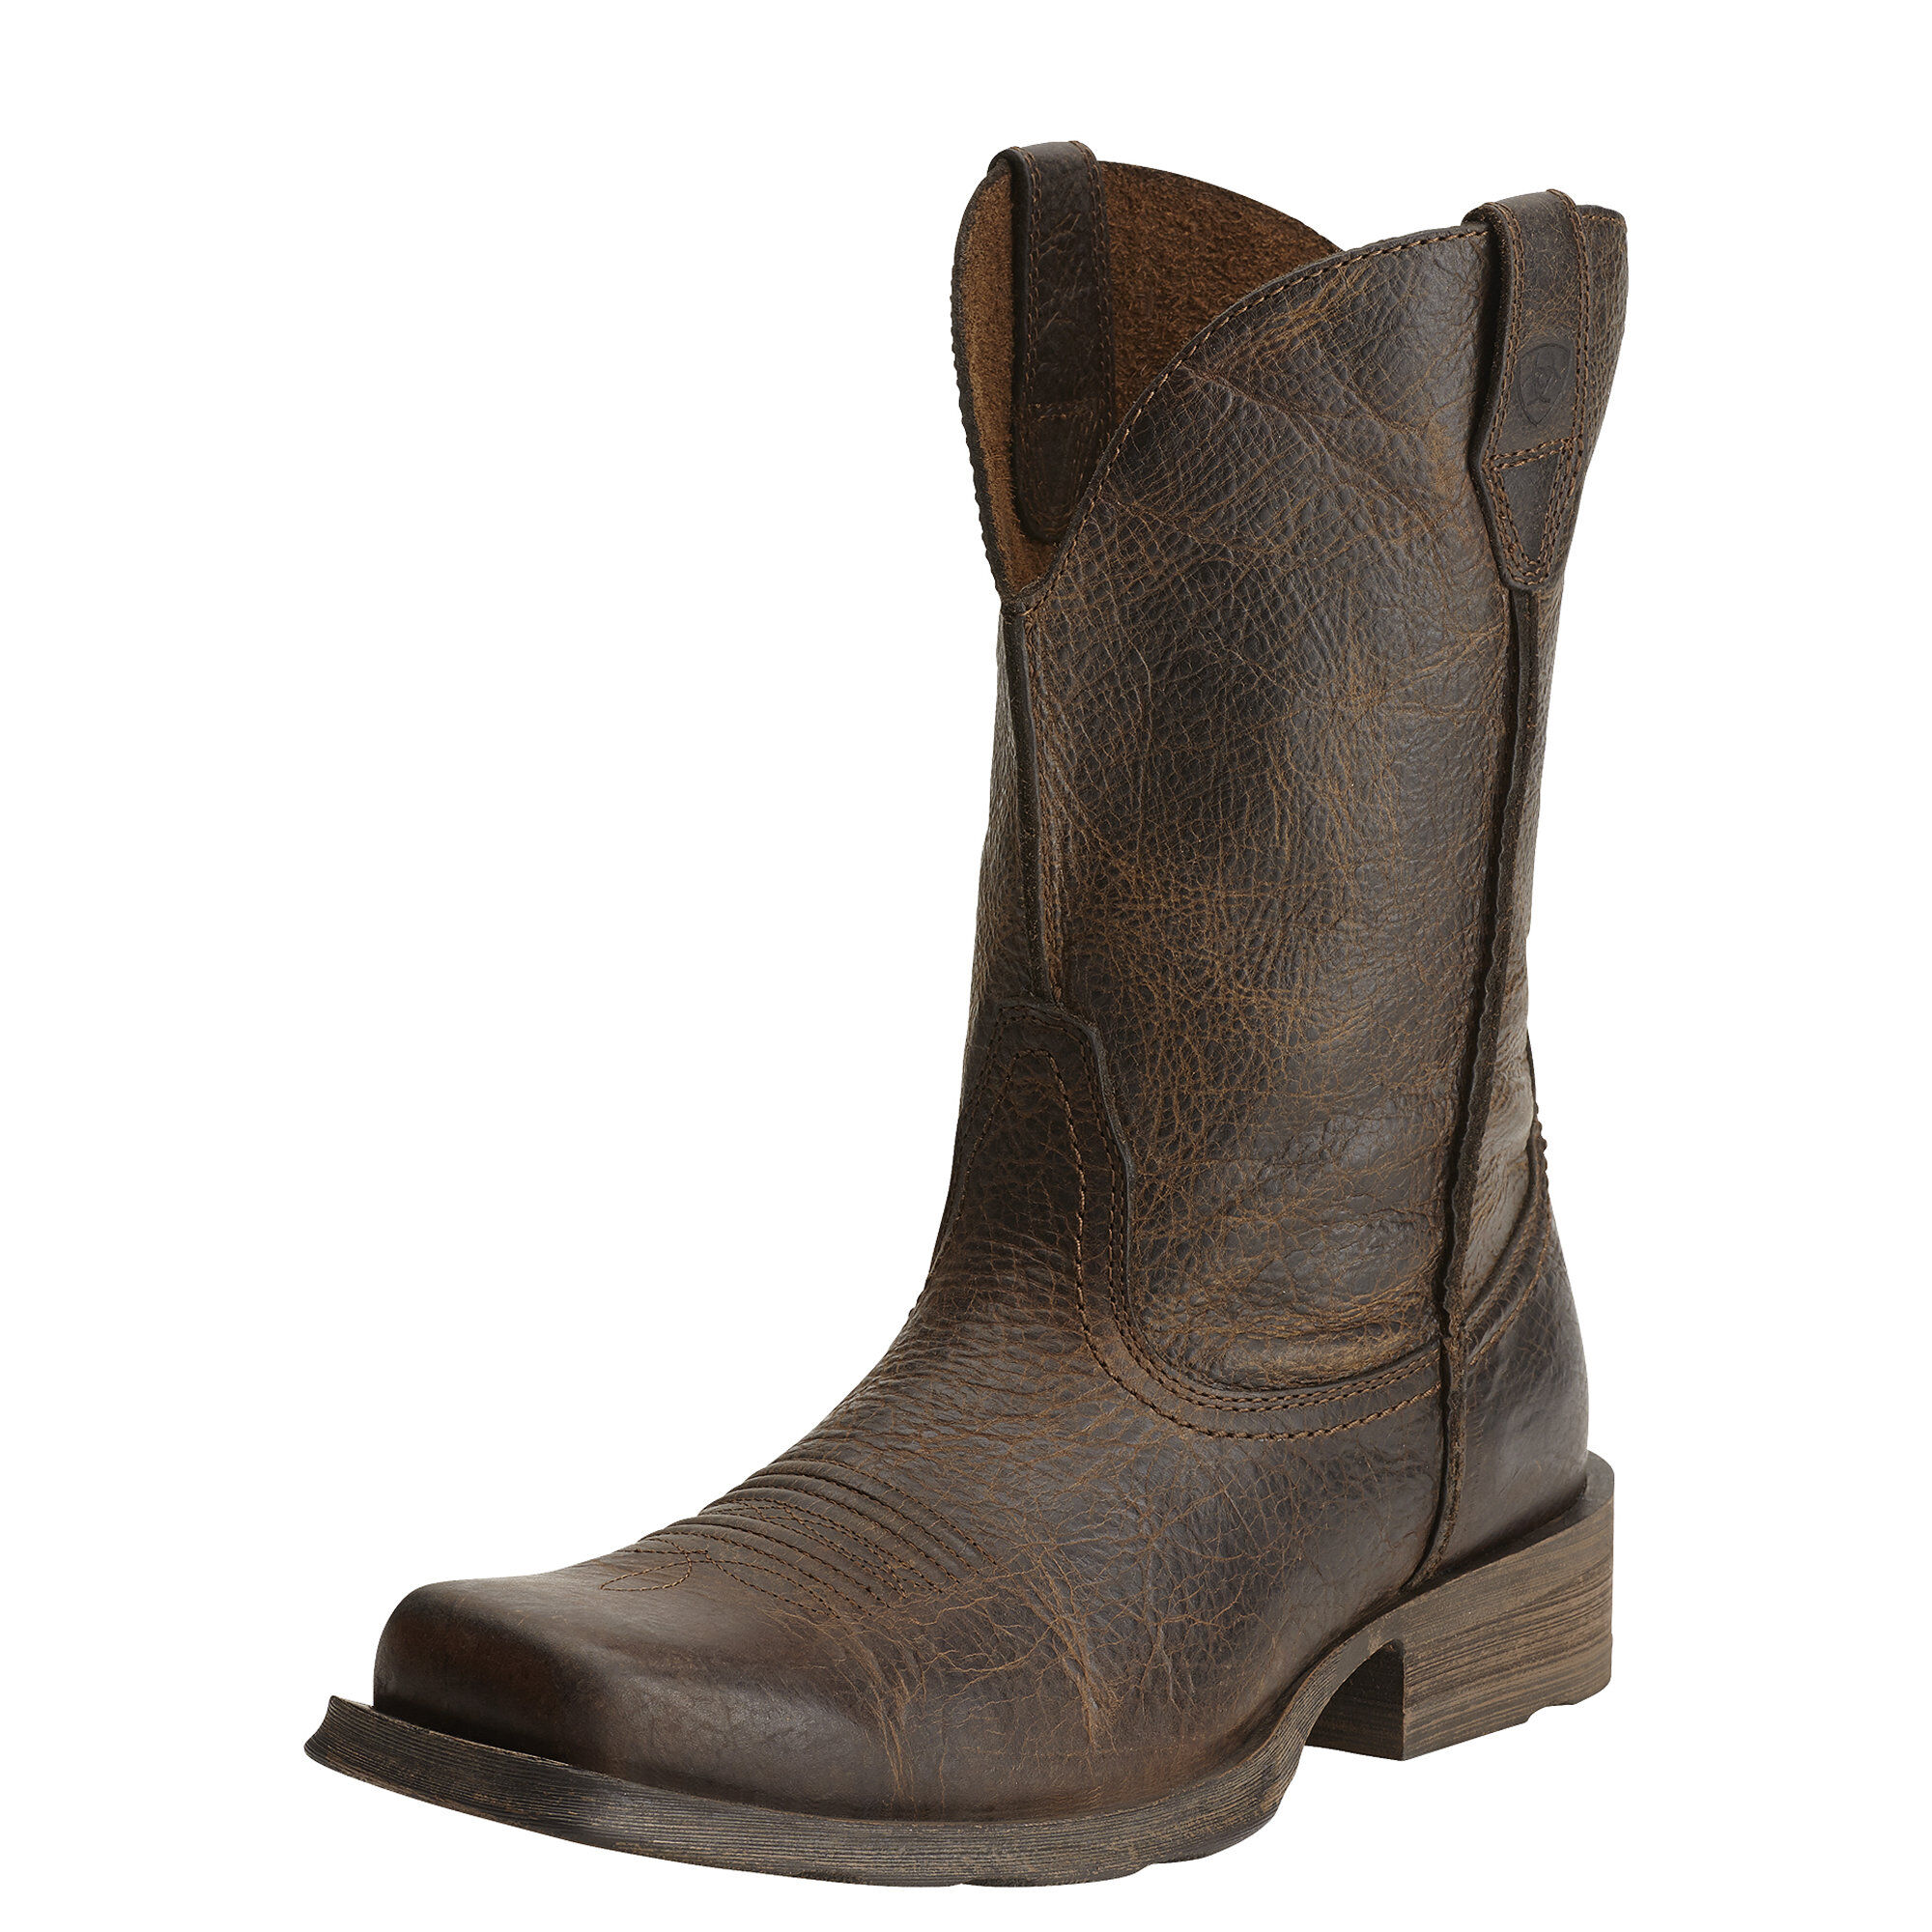 hommeAriat Chaussures Chaussures western hommeAriat Chaussures hommeAriat Chaussures western hommeAriat hommeAriat western western Chaussures western Chaussures XZkPiu